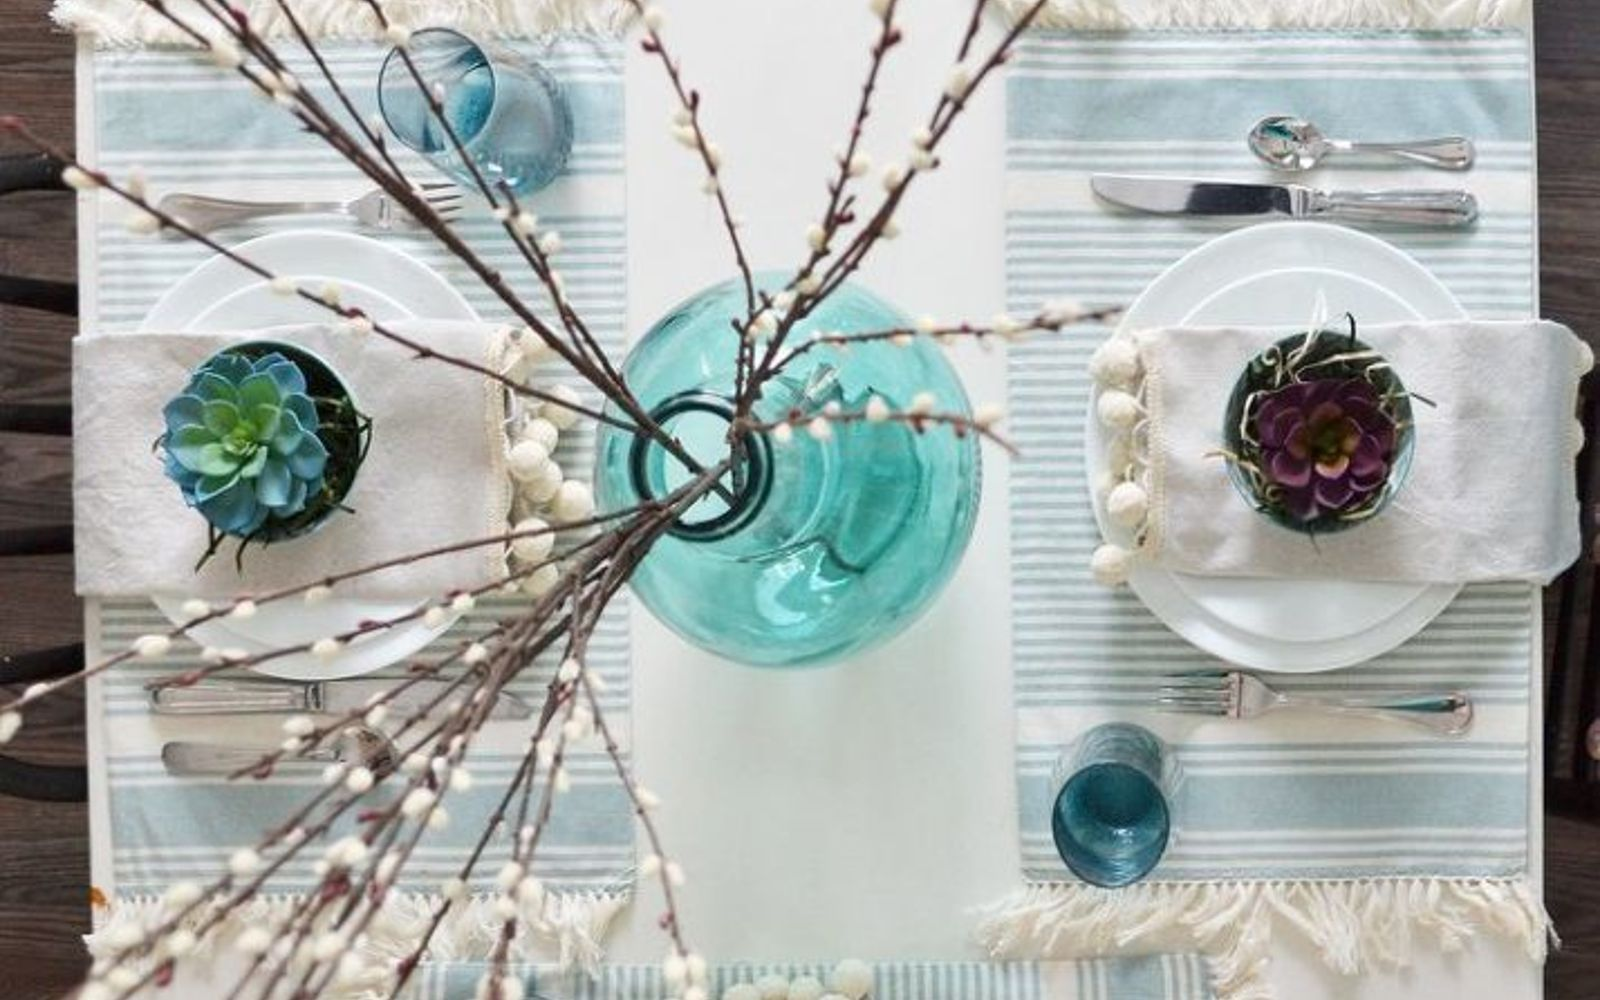 s these are the hottest diy spring trends of 2016, crafts, seasonal holiday decor, Use living elements on your spring table